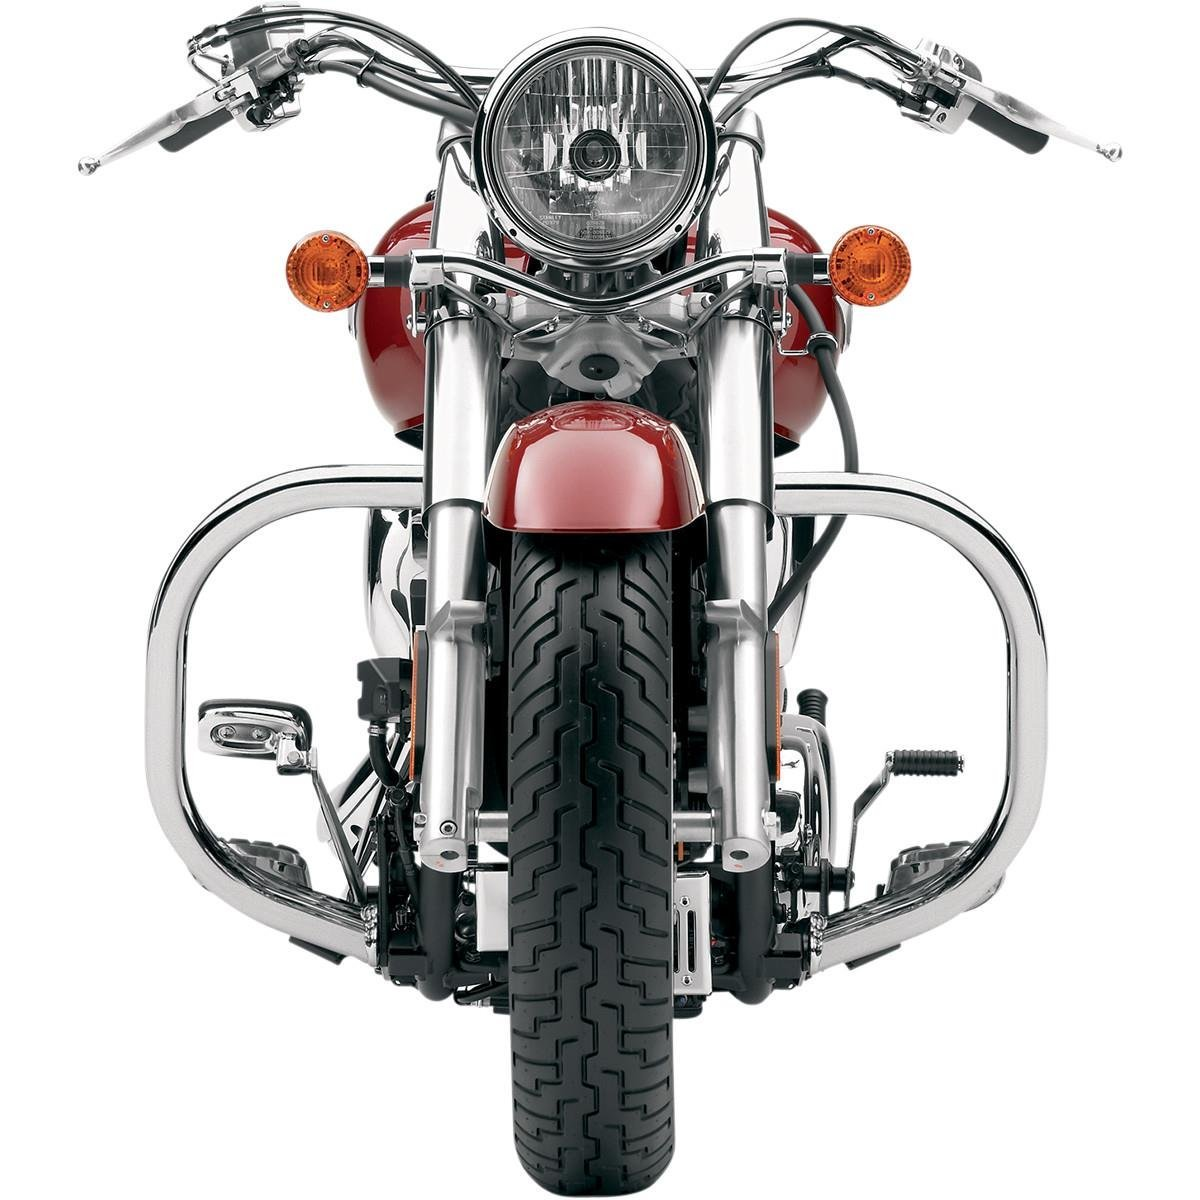 Get it delivered to your door - COBRA FATTY FREEWAY BARS For HONDA VTX1800R/S/N 02-08 - 01-2165 - 5050 (EGP)